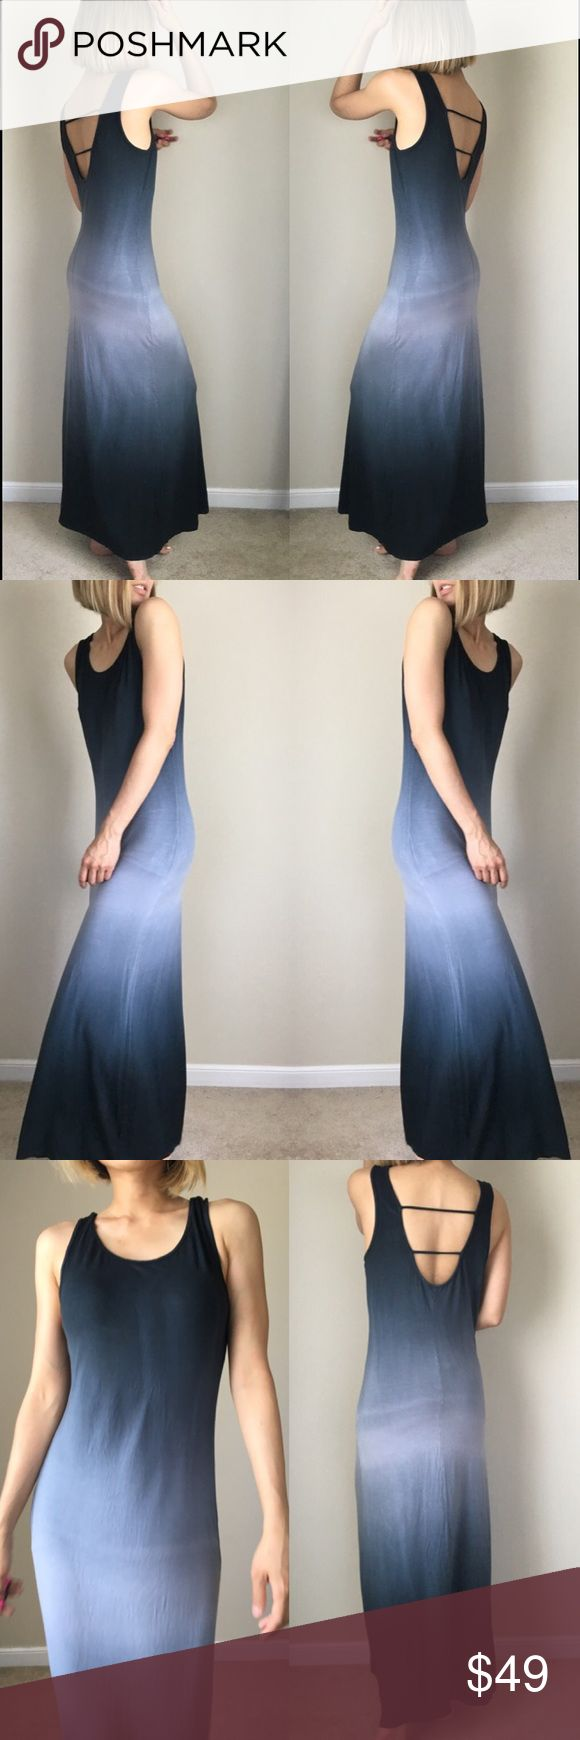 """✳️SALE Midnight ombre maxi dress. Sexy back Ombré midnight sky long dress maxi fit. 95% rayon 5% spandex . L; 55""""bust :18"""" w; 15"""" stretchable . Flat measure in inches. SEXY BACK OPEN BACK Dresses Maxi"""